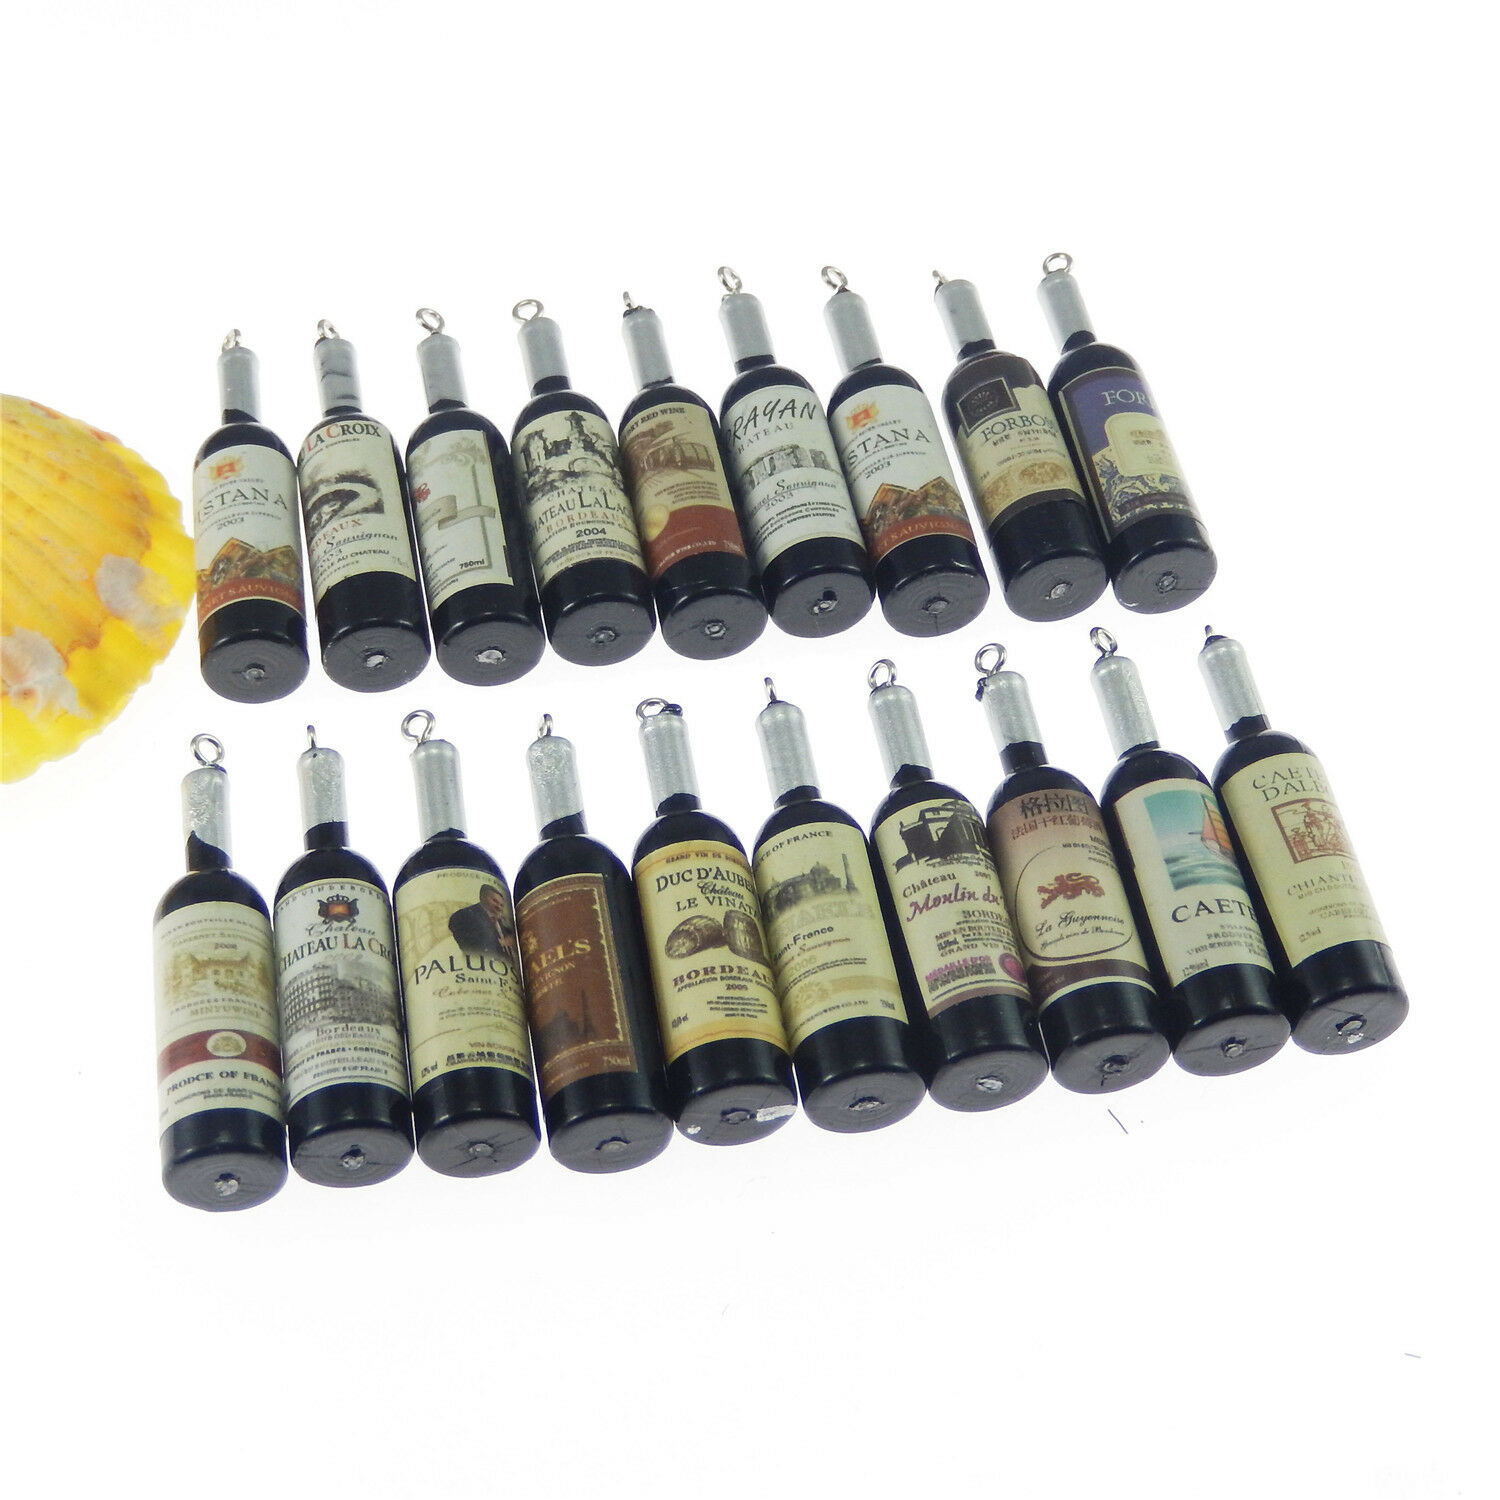 Beads Jewellelry Making Supplies 51706 Black Silver Color Resin Red Wine Bottle Necklace Pendant Jewelry 20pcs Restaurantecarlini Com Br